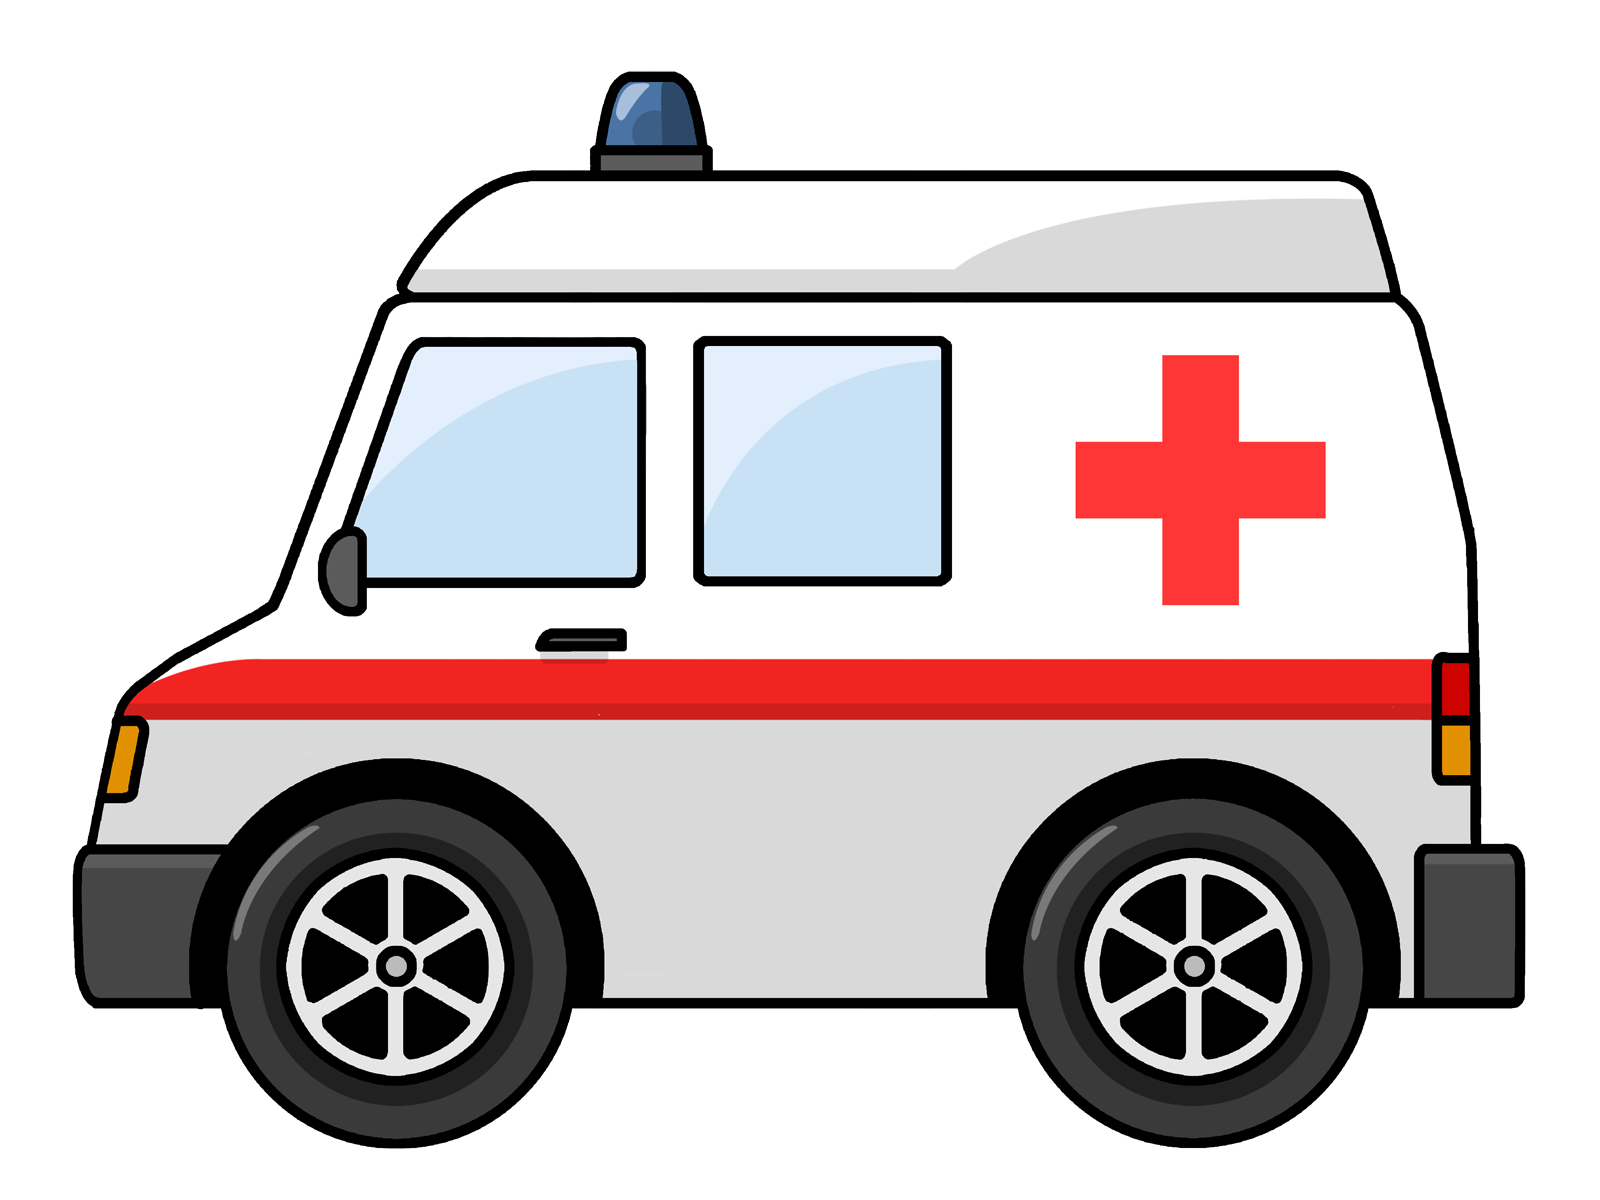 ambulance seeing an ambulance is very unlucky unless you pinch rh pinterest com clipart ambulance black and white clipart ambulance pictures